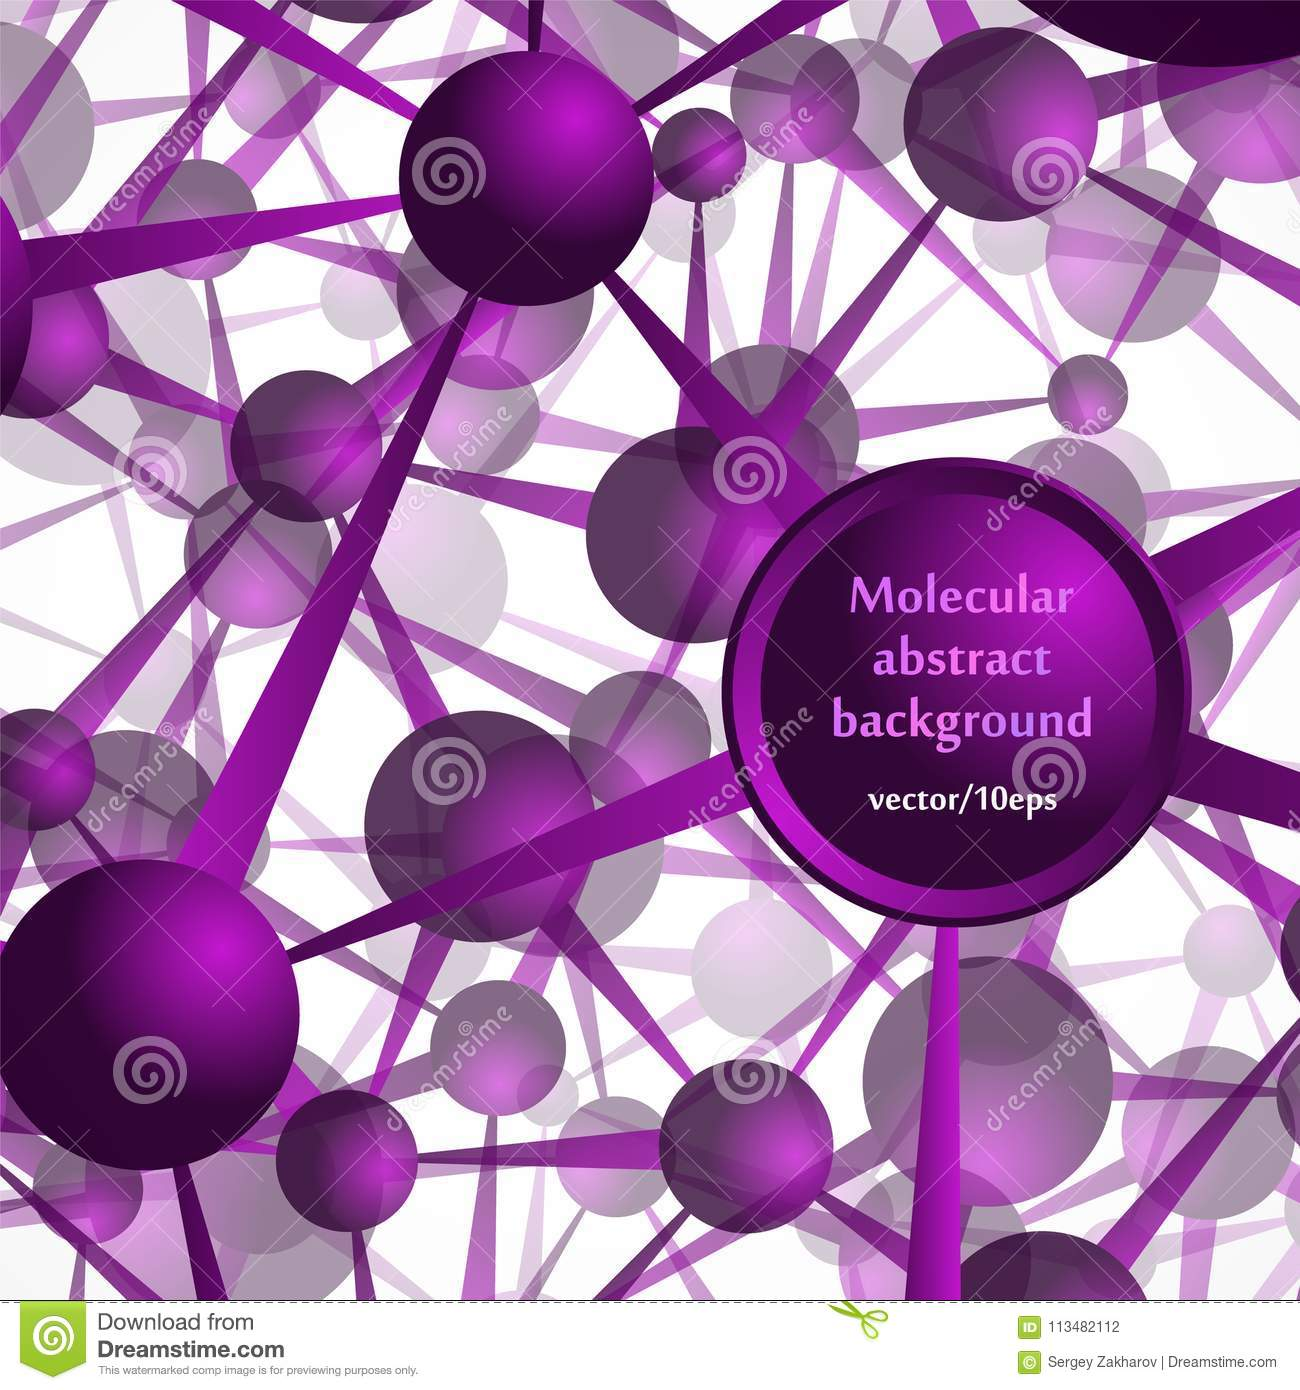 The molecular structure, the atoms. Abstract background in purple tones.